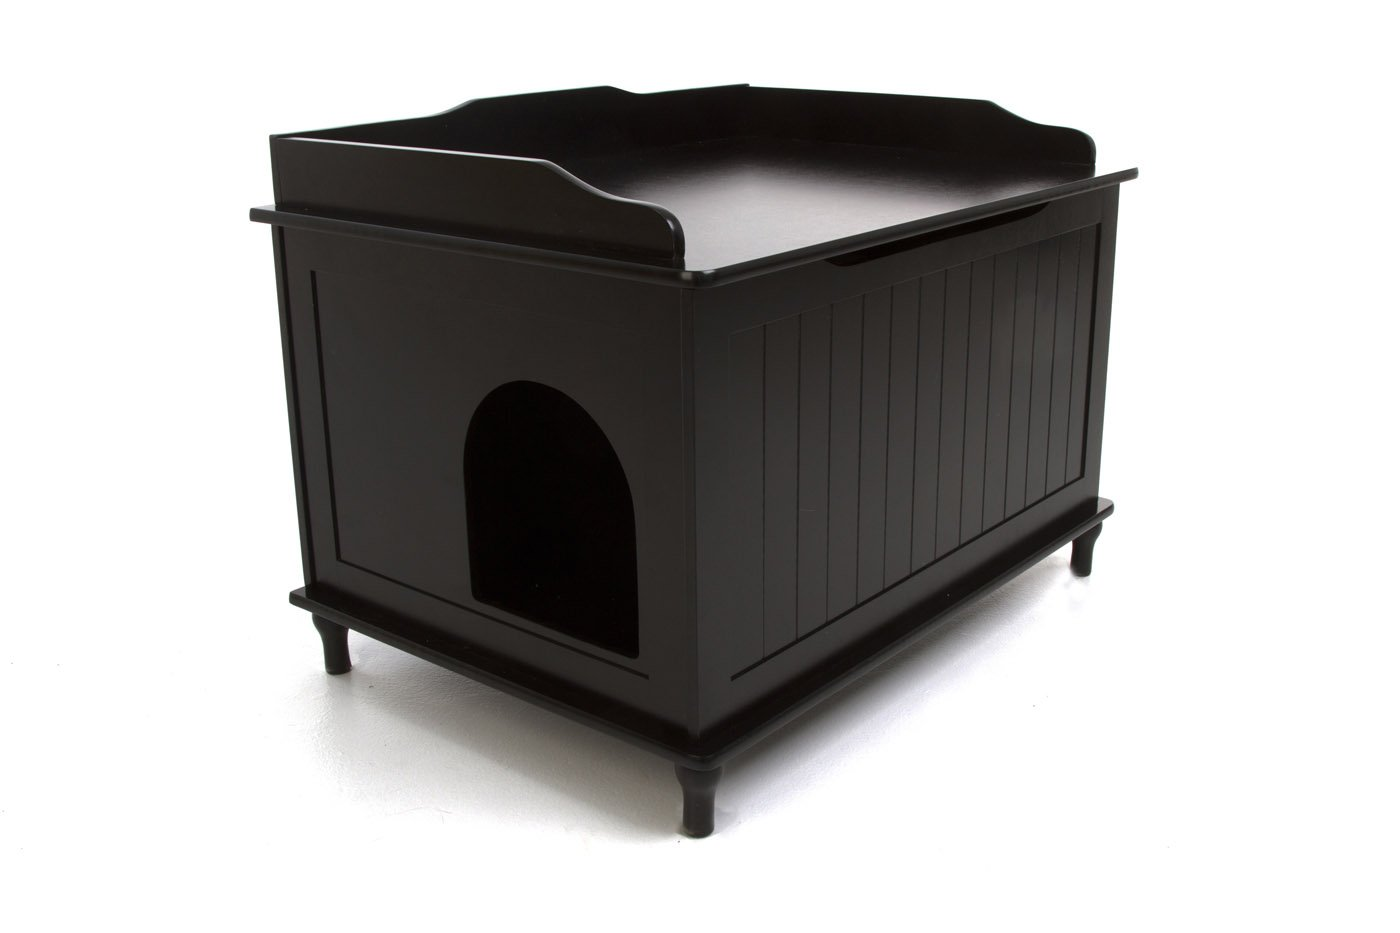 Nora Designer Litter Box Chest in Black by Designer Catbox